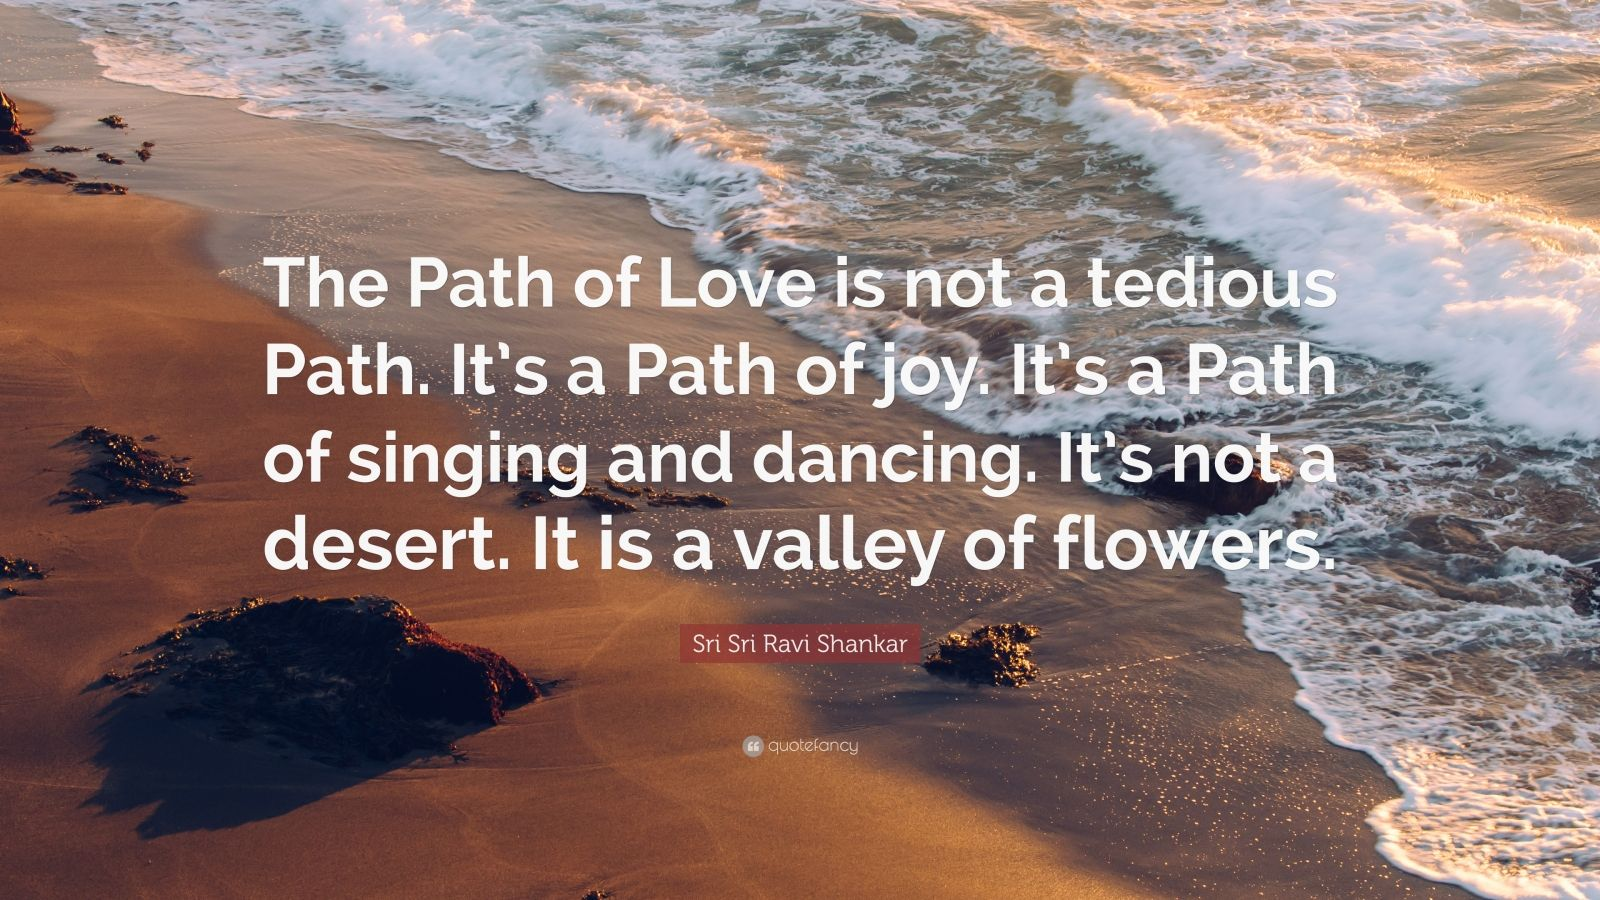 """Sri Sri Ravi Shankar Quote: """"The Path of Love is not a tedious Path. It's a Path of joy. It's a Path of singing and dancing. It's not a desert. It is a valley of flowers."""""""